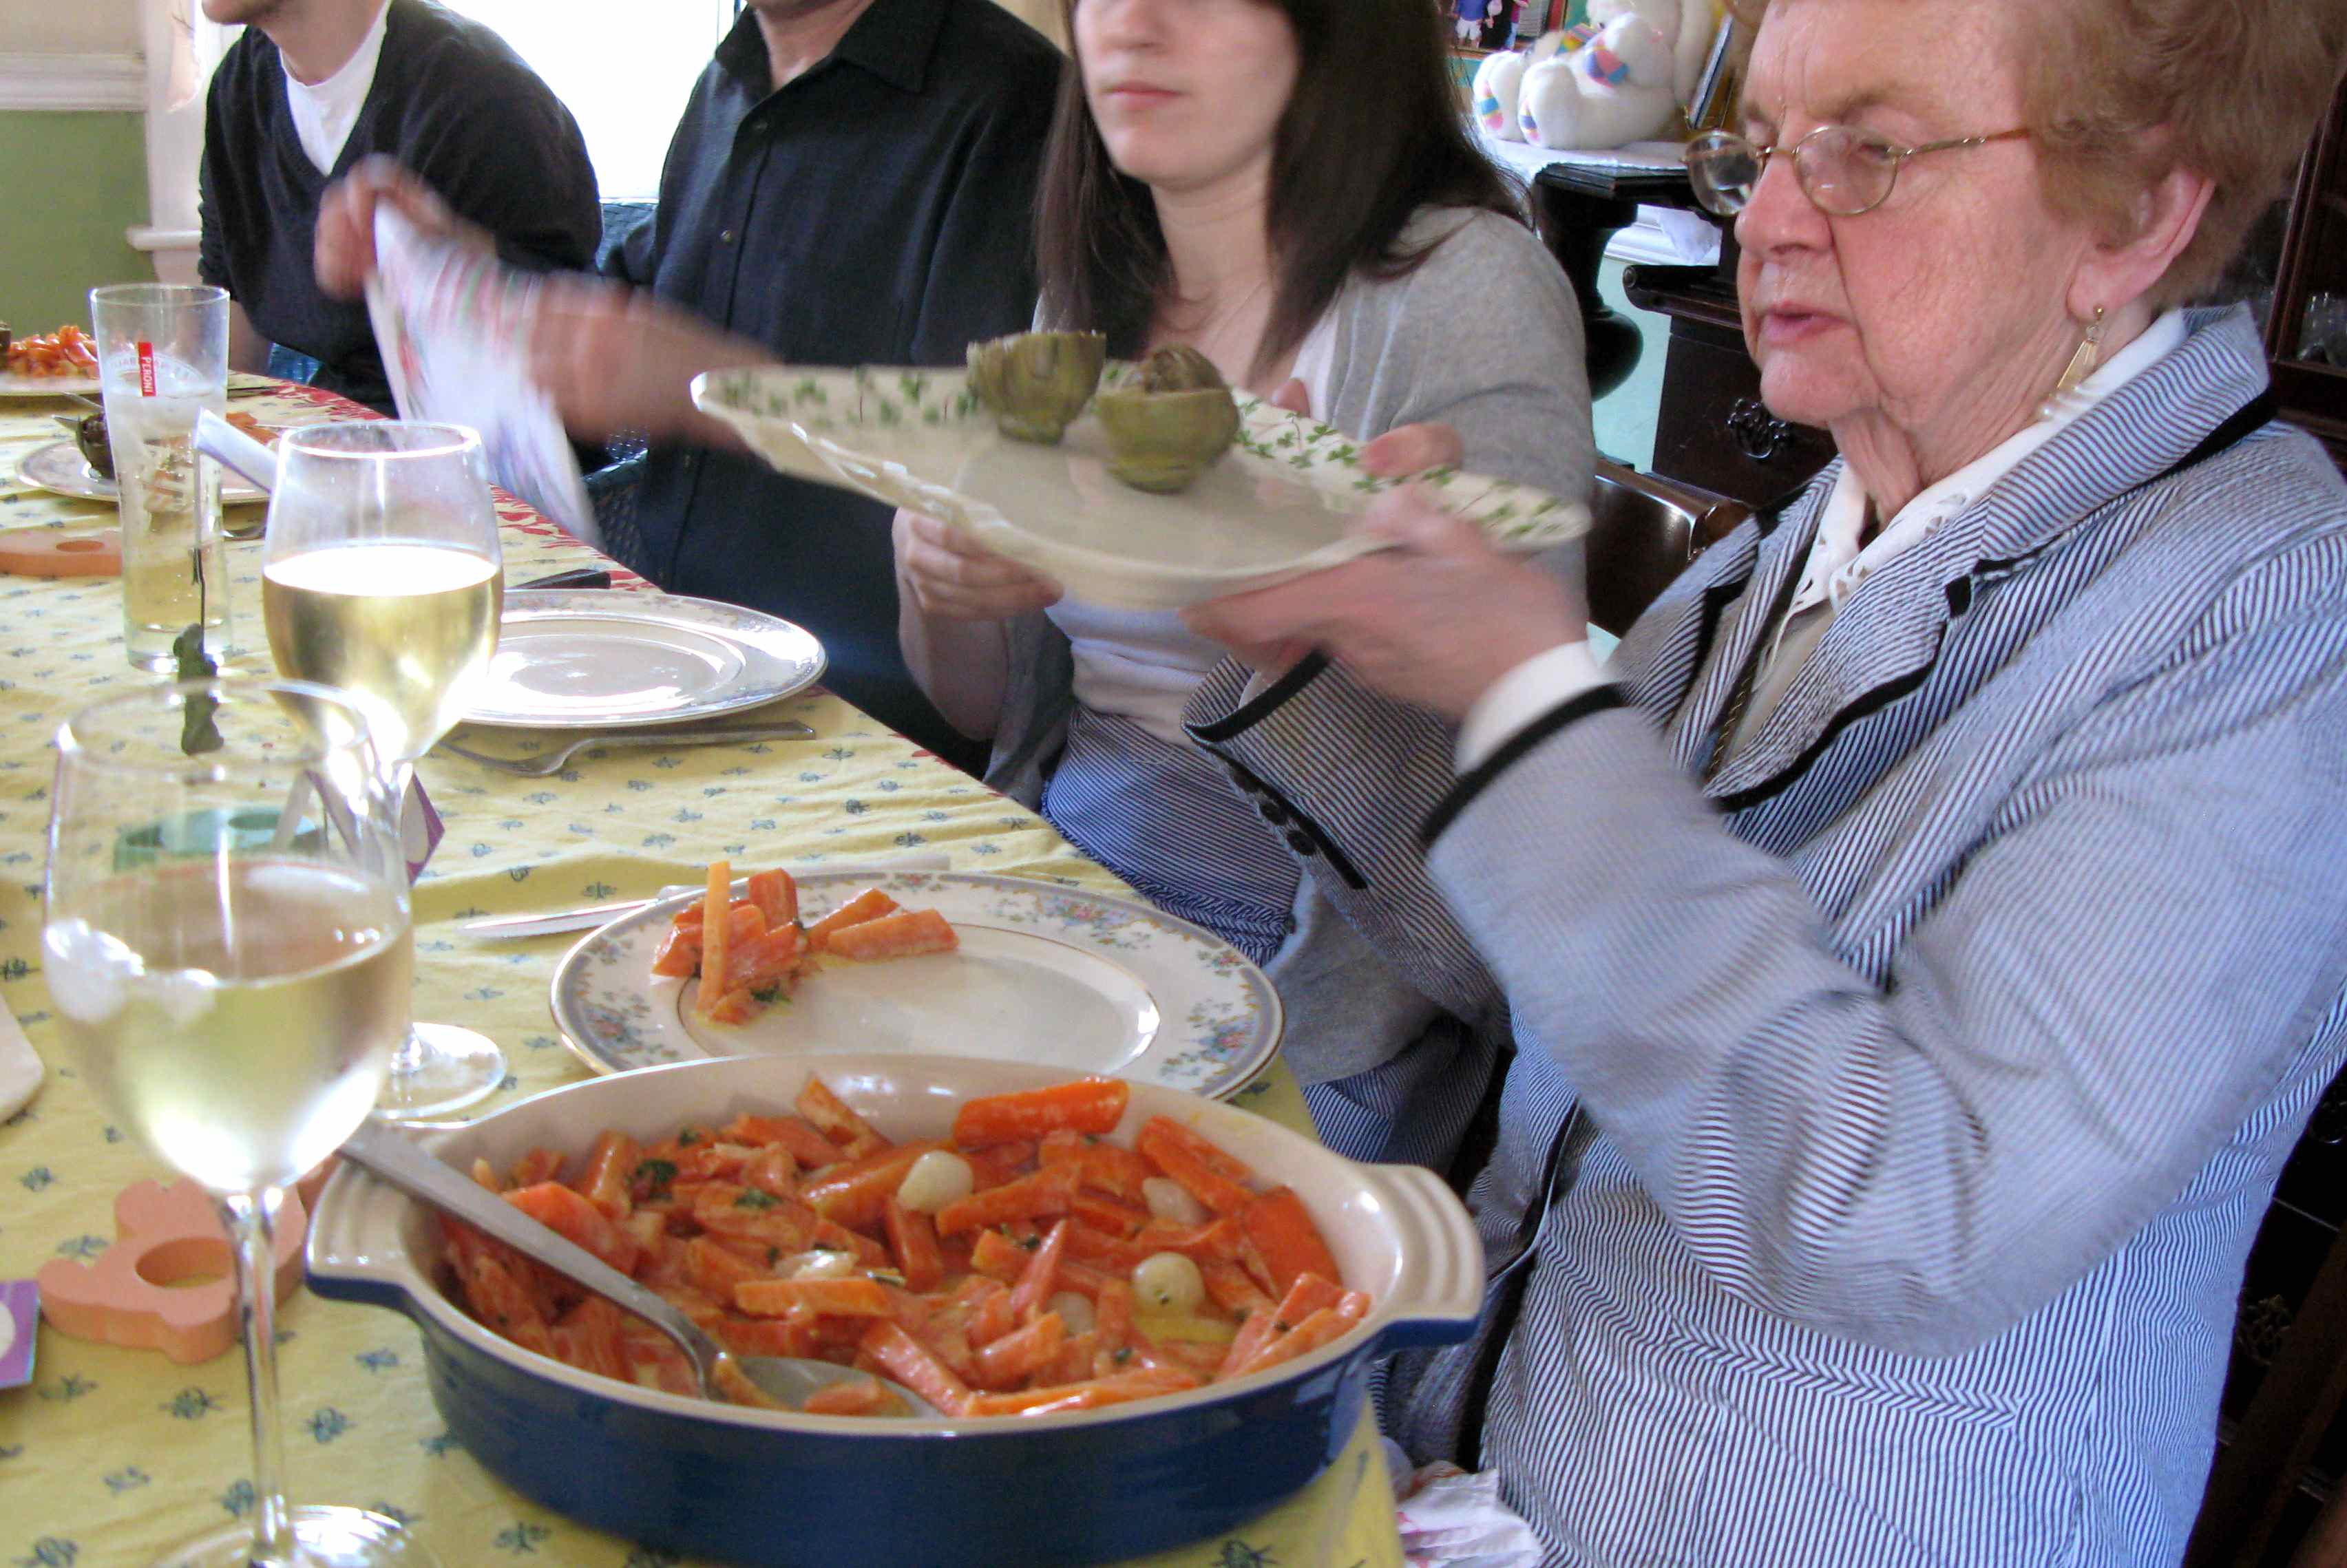 The passing of the stuffed artichokes from Easter dinner 2010 in the RootsLiving dining room.